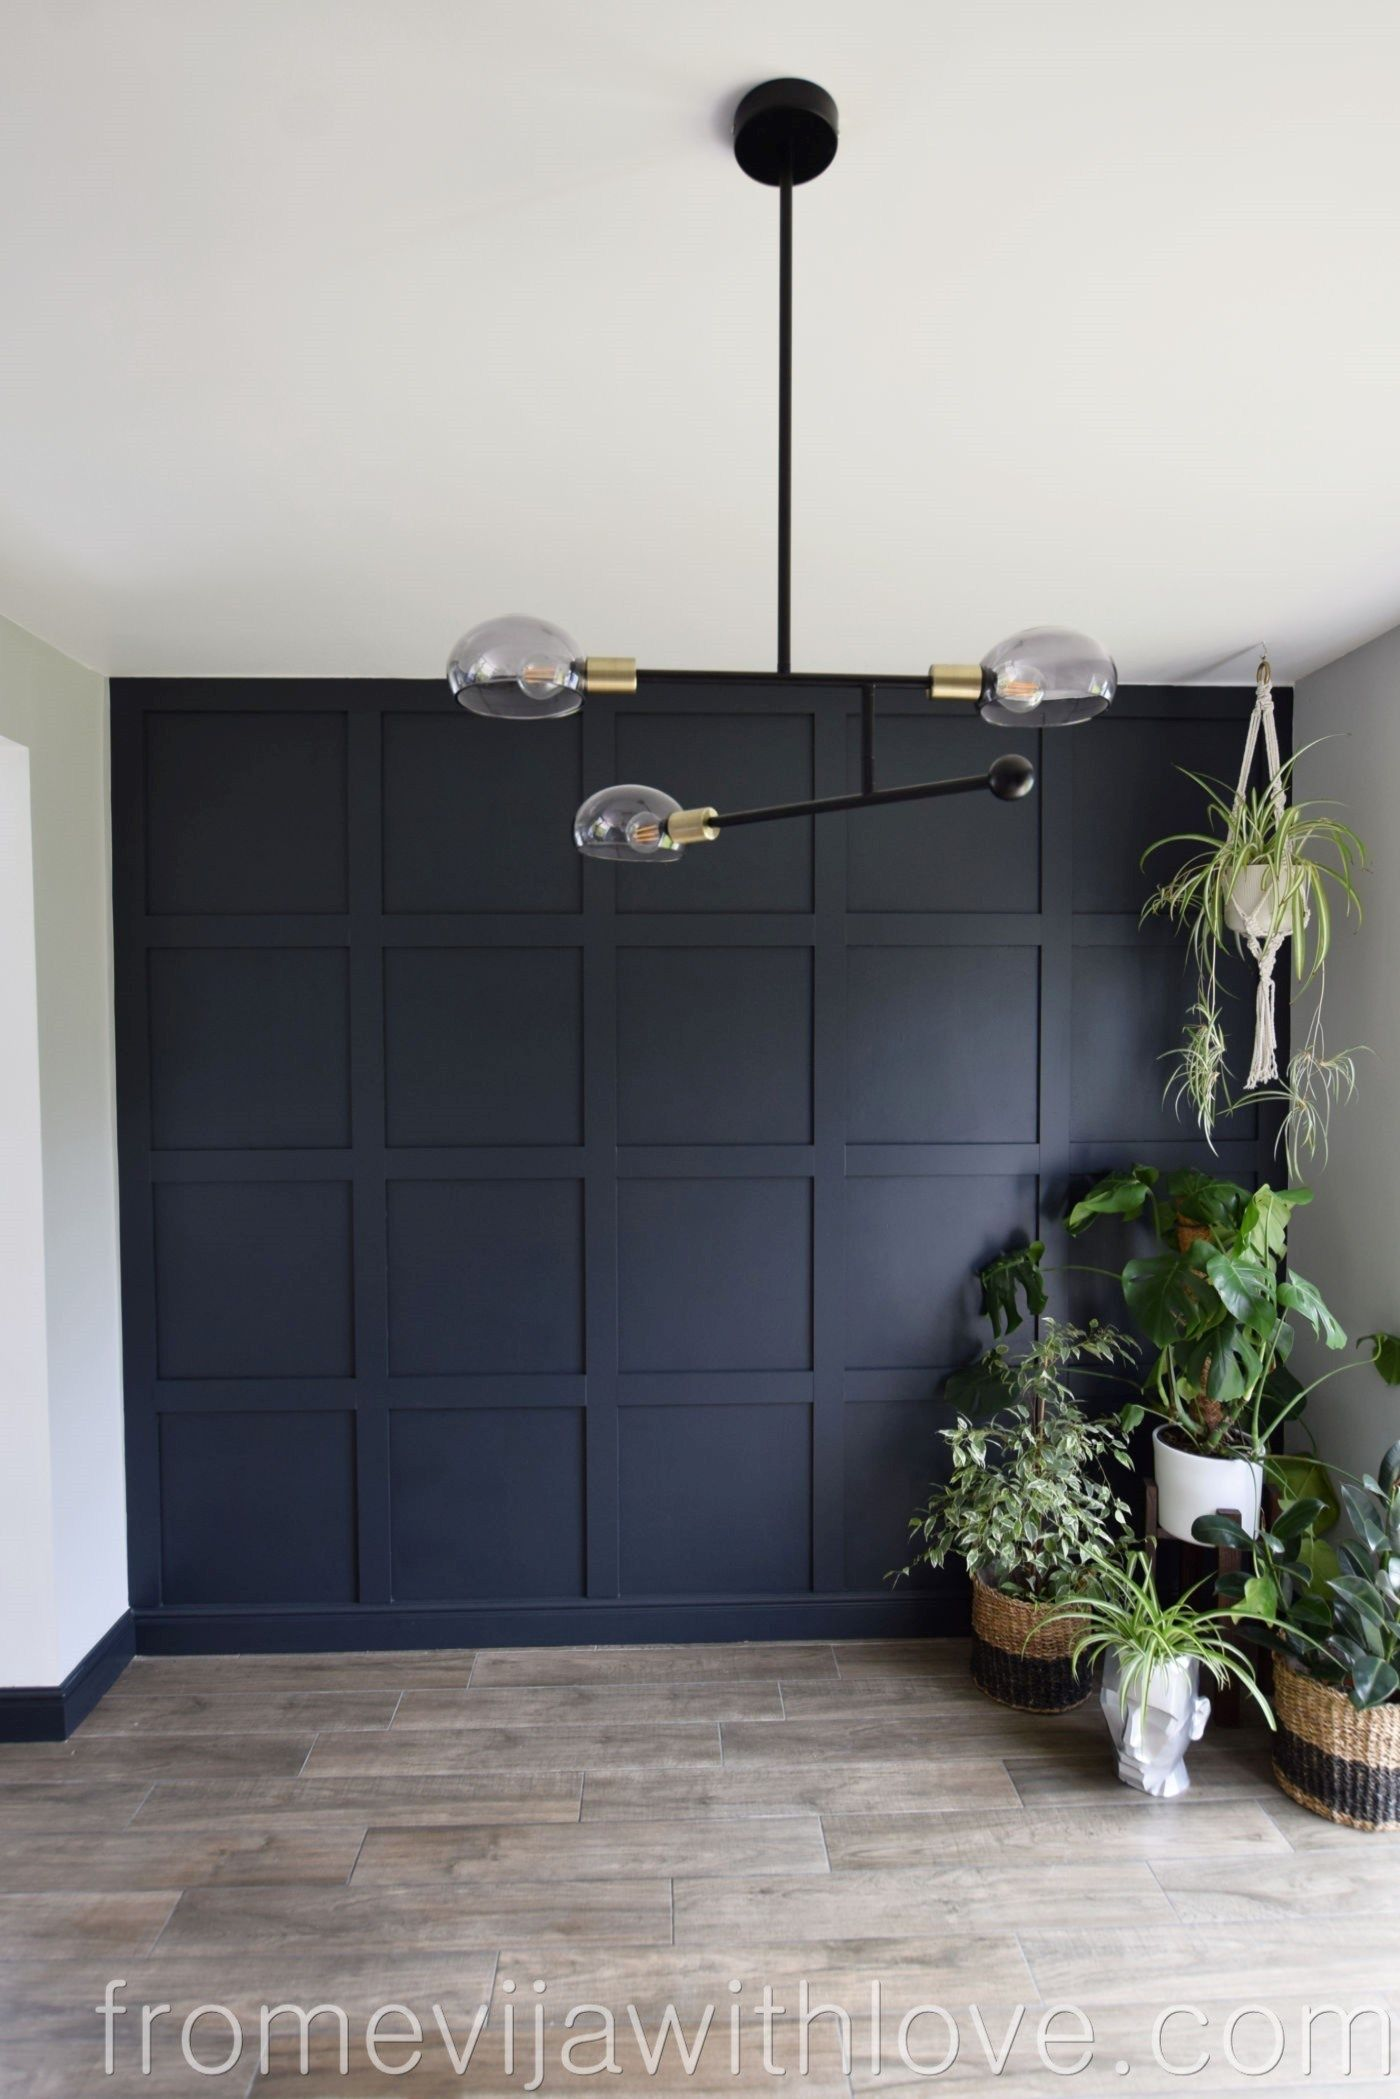 Statement Panel Wall Farrow and Ball Railings - HOW TO MAKE A STATEMENT PANEL WALL USING ADHESIVE